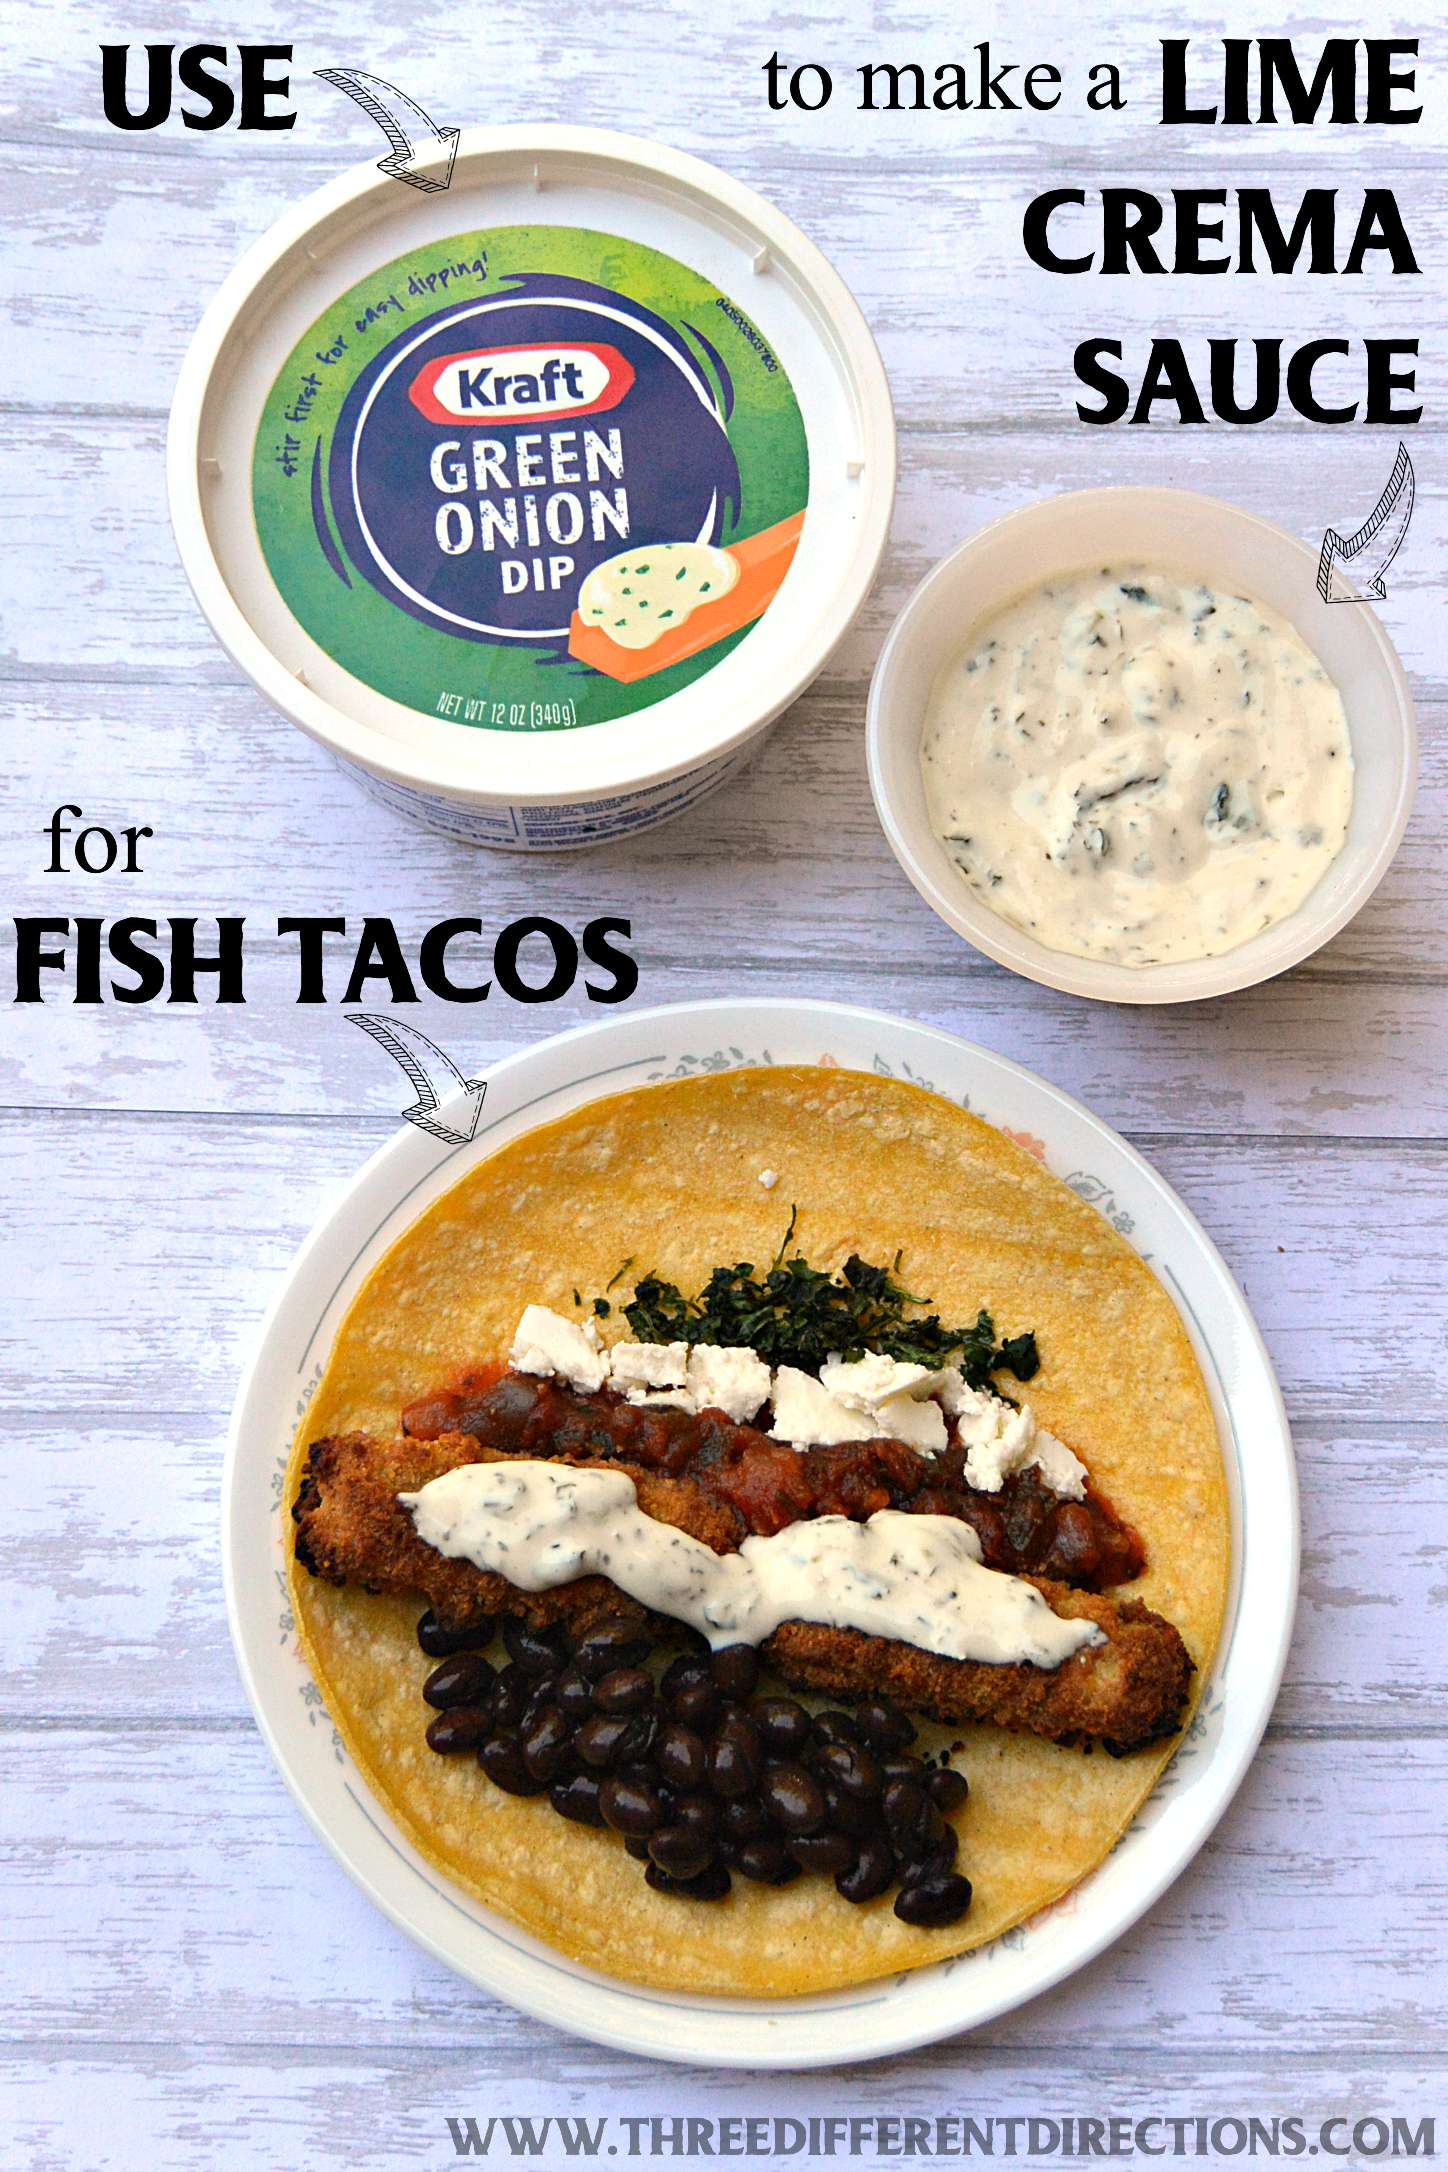 Fish Tacos with Lime Crema Sauce made with Kraft Green Onion Dip